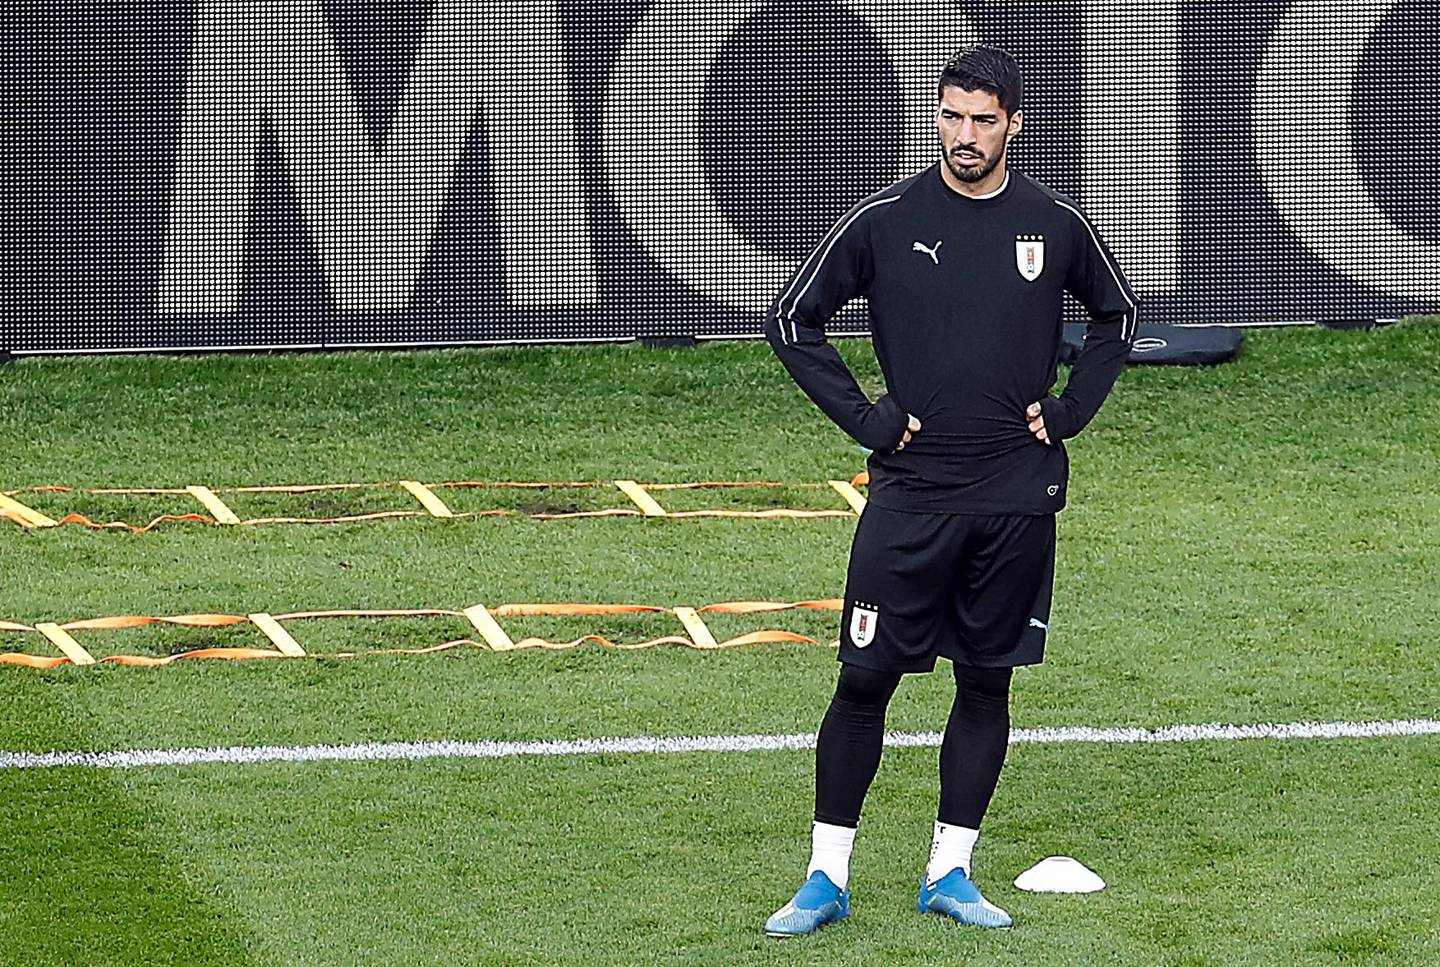 epa06807319 Uruguay's Luis Suarez (C) attends a training session at Central Stadium in Ekaterinburg, Russia, 14 June 2018. Uruguay will face Egypt  in the FIFA World Cup 2018 Group A preliminary round soccer match on 15 June 2018.  (RESTRICTIONS APPLY: Editorial Use Only, not used in association with any commercial entity - Images must not be used in any form of alert service or push service of any kind including via mobile alert services, downloads to mobile devices or MMS messaging - Images must appear as still images and must not emulate match action video footage - No alteration is made to, and no text or image is superimposed over, any published image which: (a) intentionally obscures or removes a sponsor identification image; or (b) adds or overlays the commercial identification of any third party which is not officially associated with the FIFA World Cup).  EPA/ROMAN PILIPEY   EDITORIAL USE ONLY  EDITORIAL USE ONLY